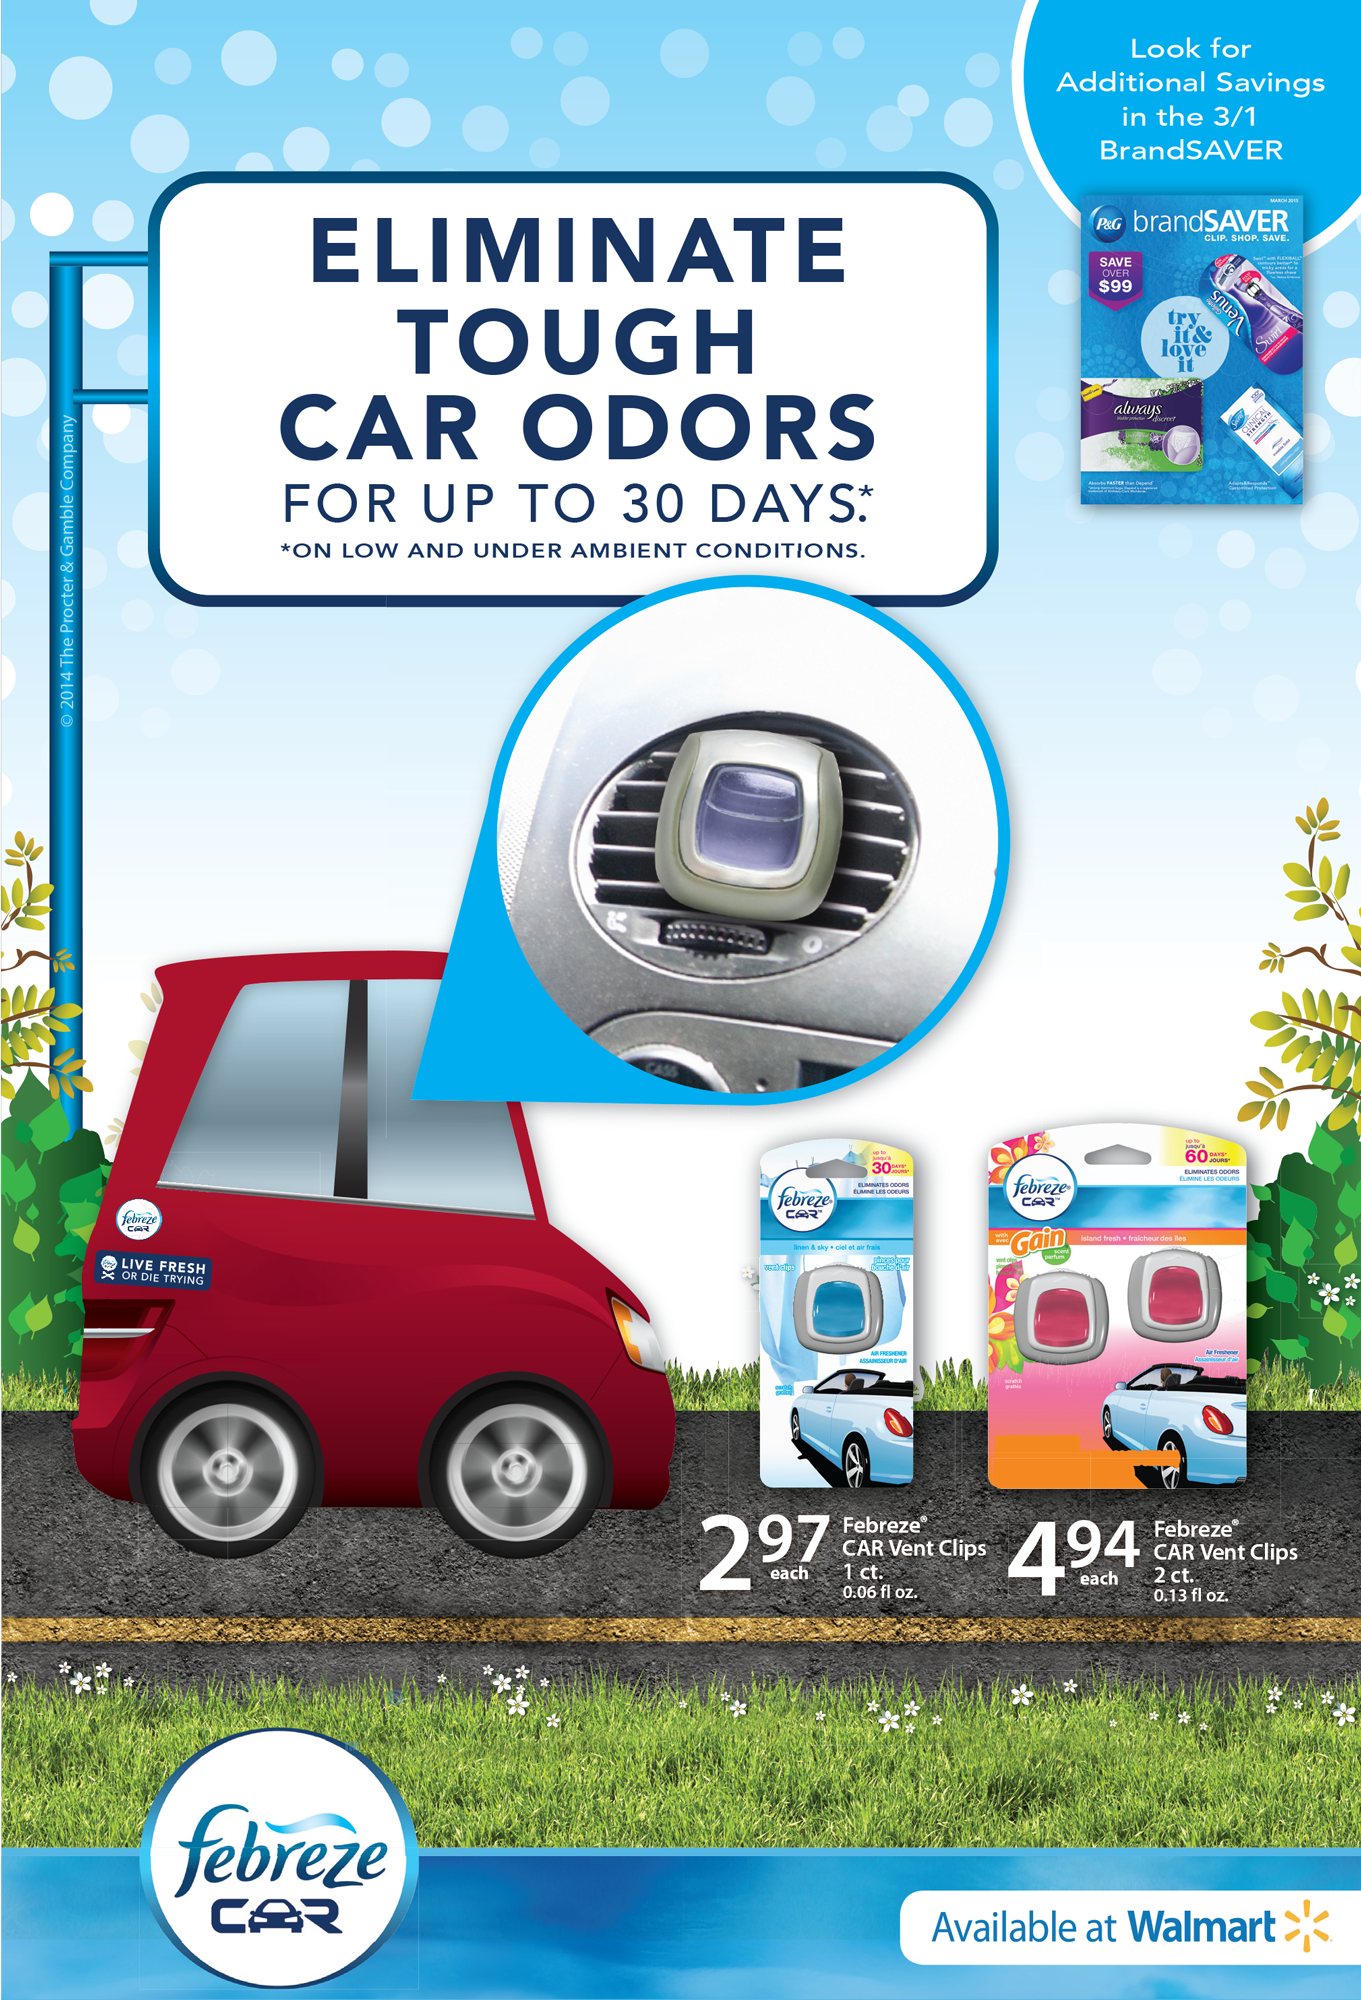 Walmart Ad for Febreze Car Clips